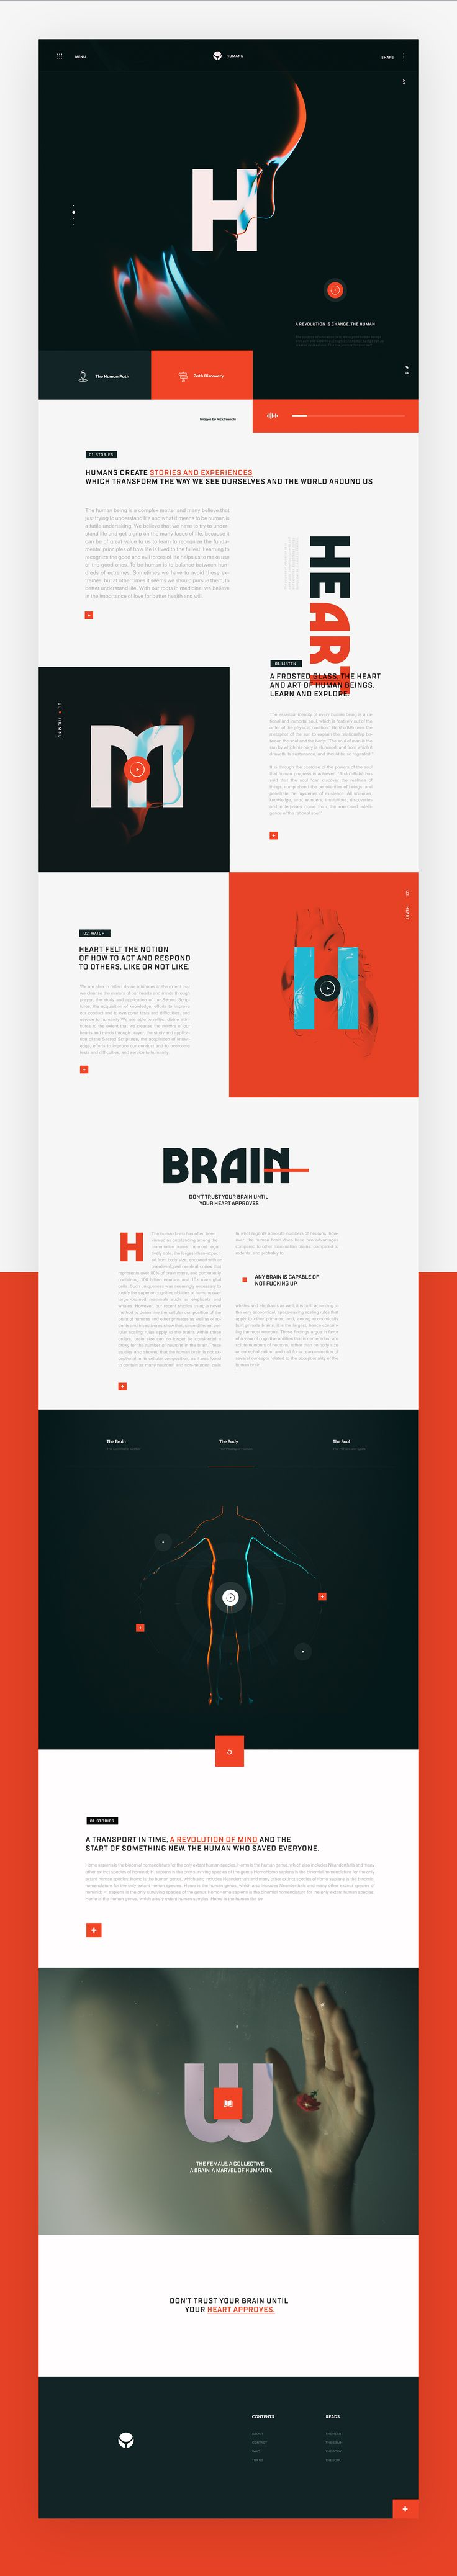 Humans – Ui design concept and visual identity by Nick Franchi.